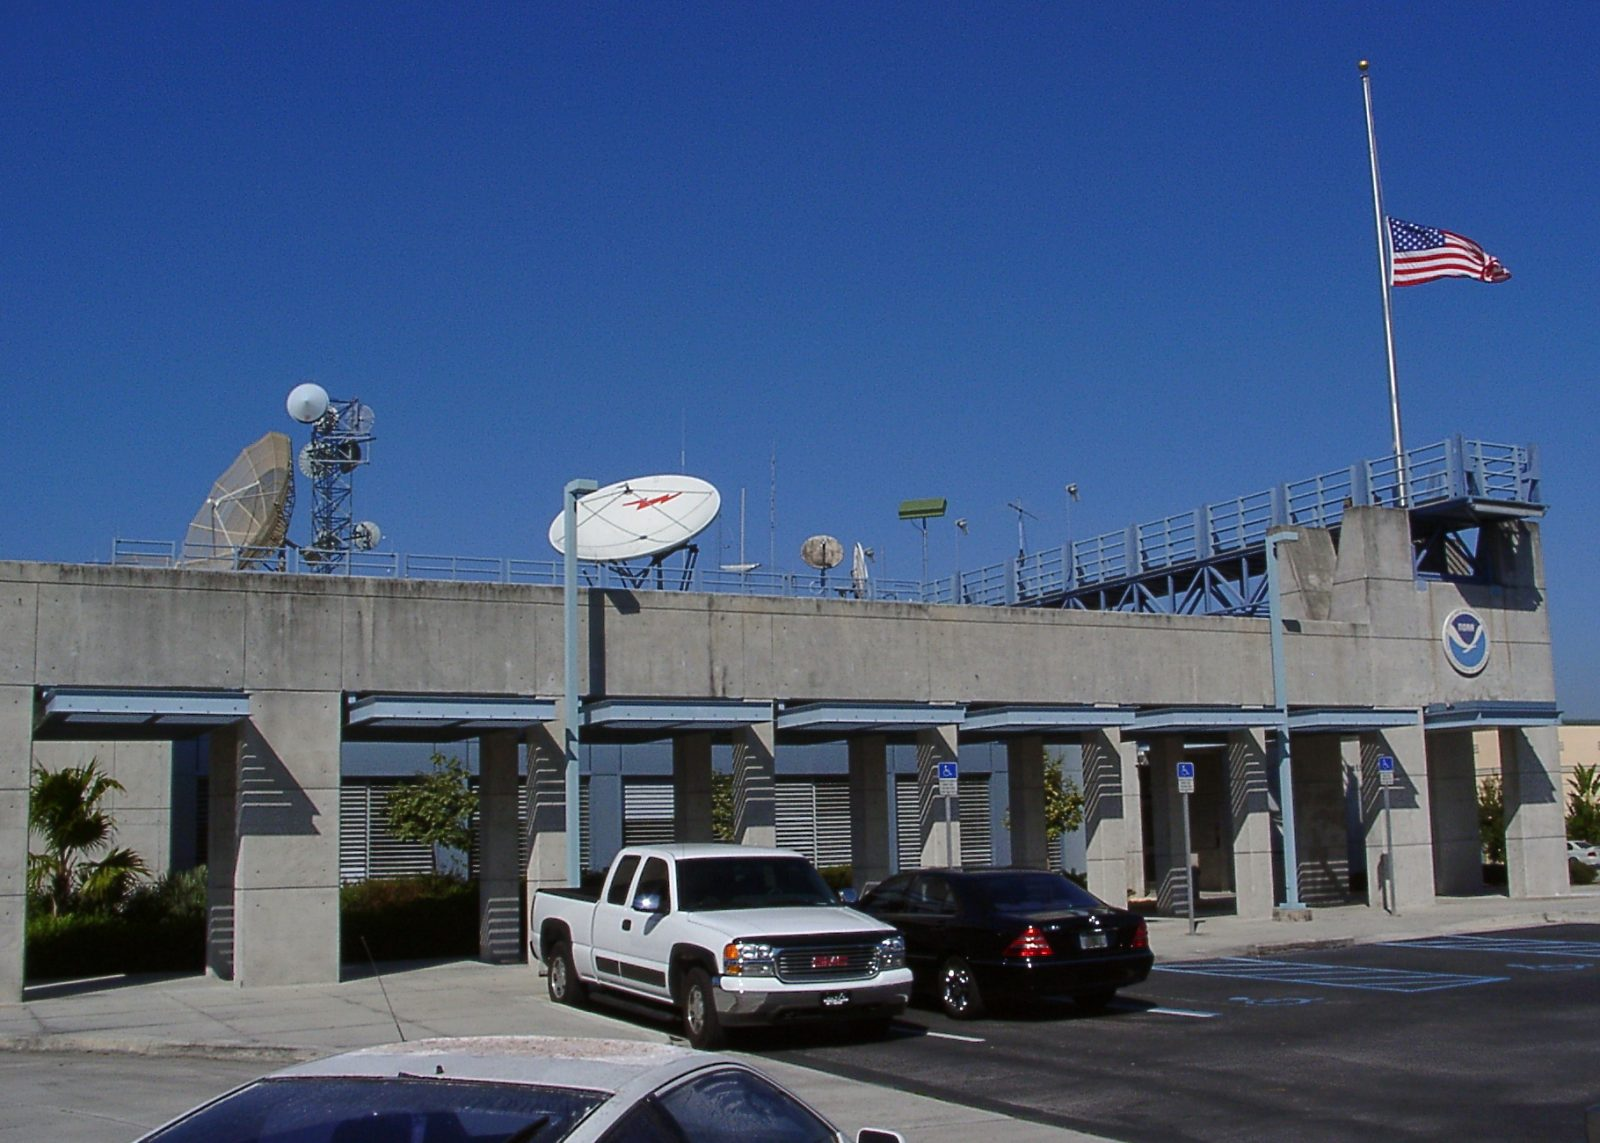 High tech NHC meteorologist station circa 2003